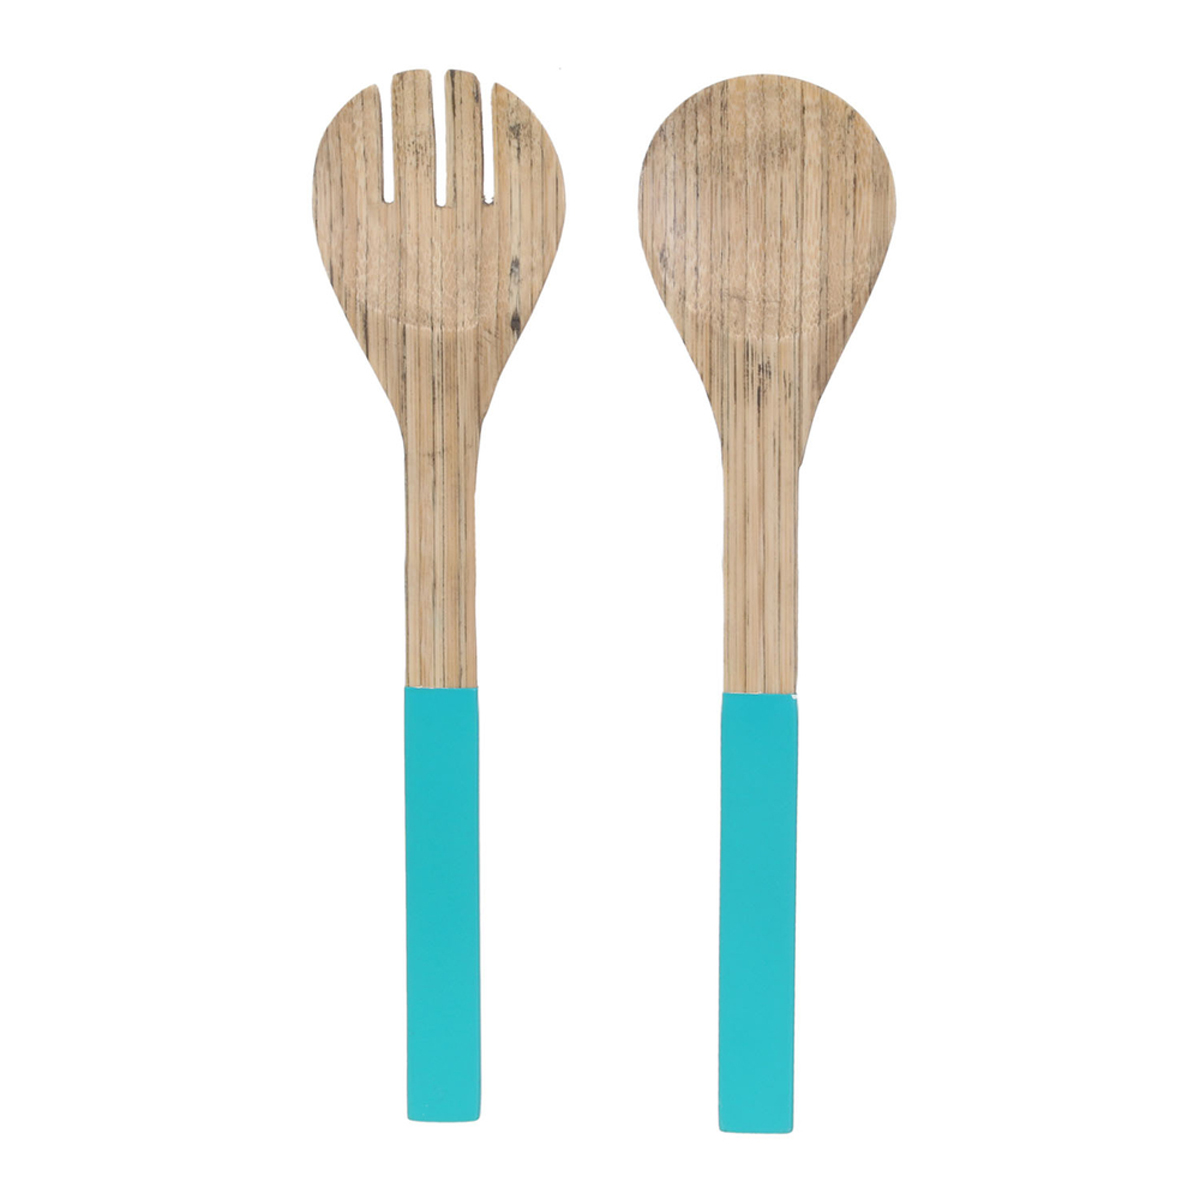 Couverts à salade bambou \'Boho\' turquoise beige - 30x7 cm - [R2877]